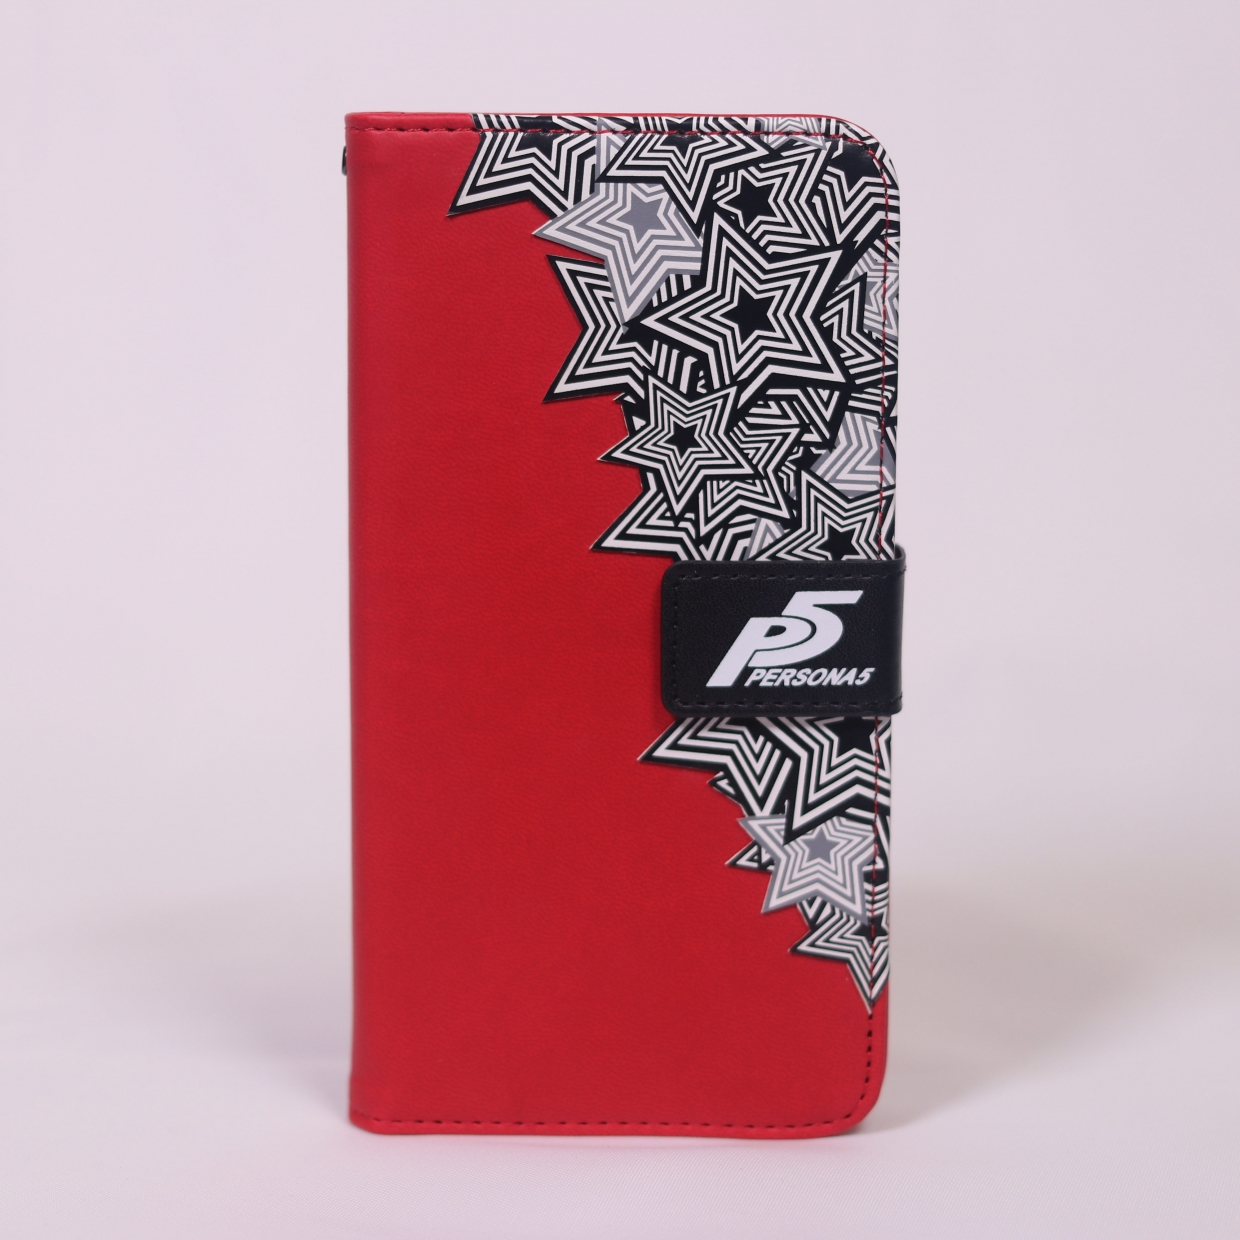 Persona 5 Phone Case (Large)